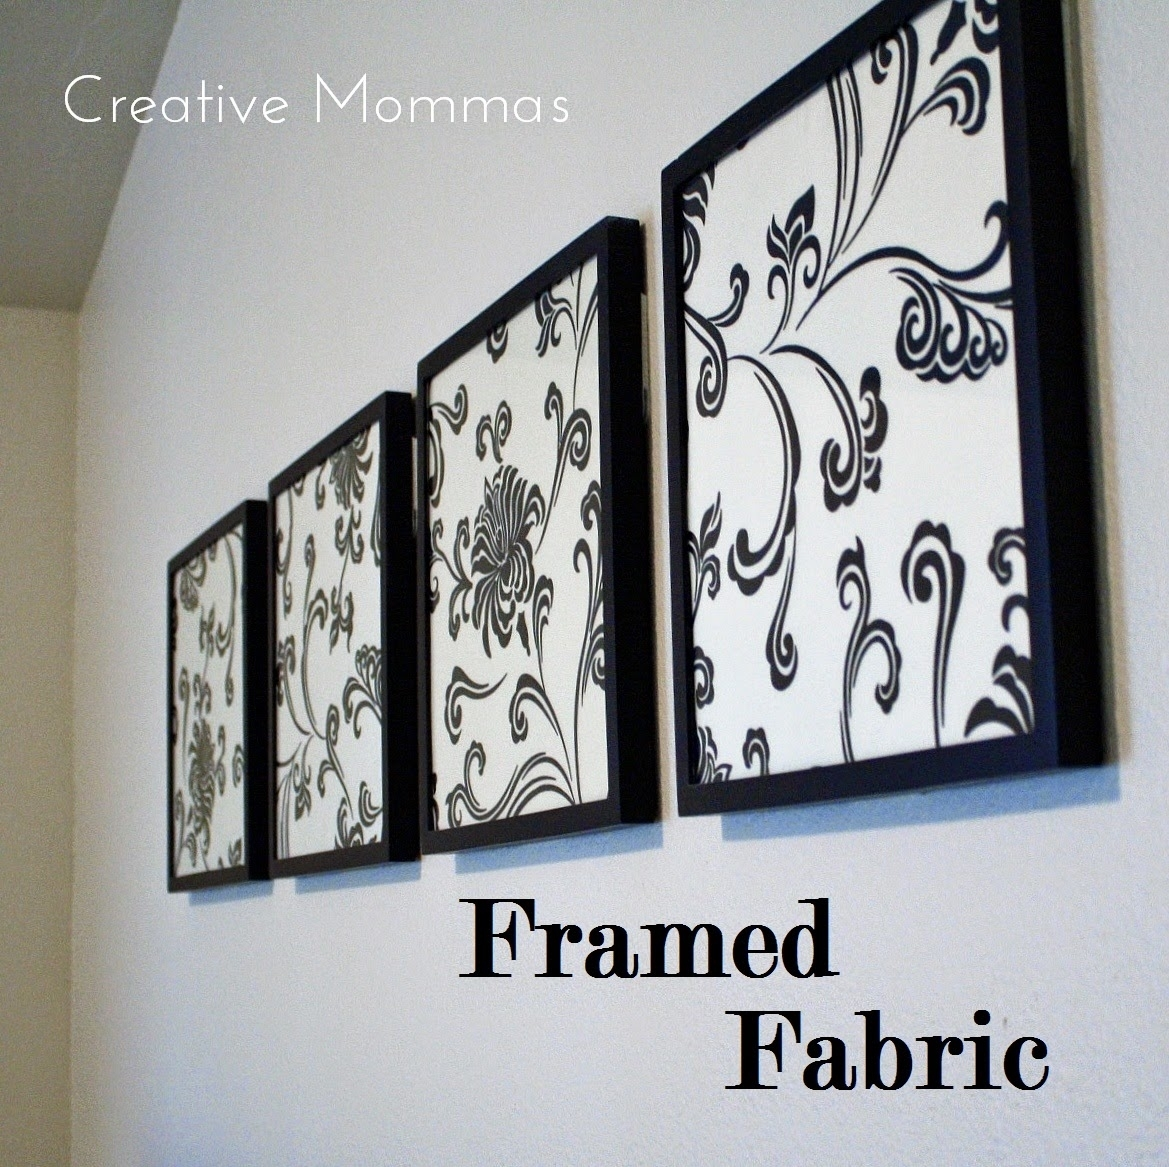 Creative Mommas: Framed Fabric Wall Decor Intended For Latest Iron Fabric Wall Art (View 1 of 15)